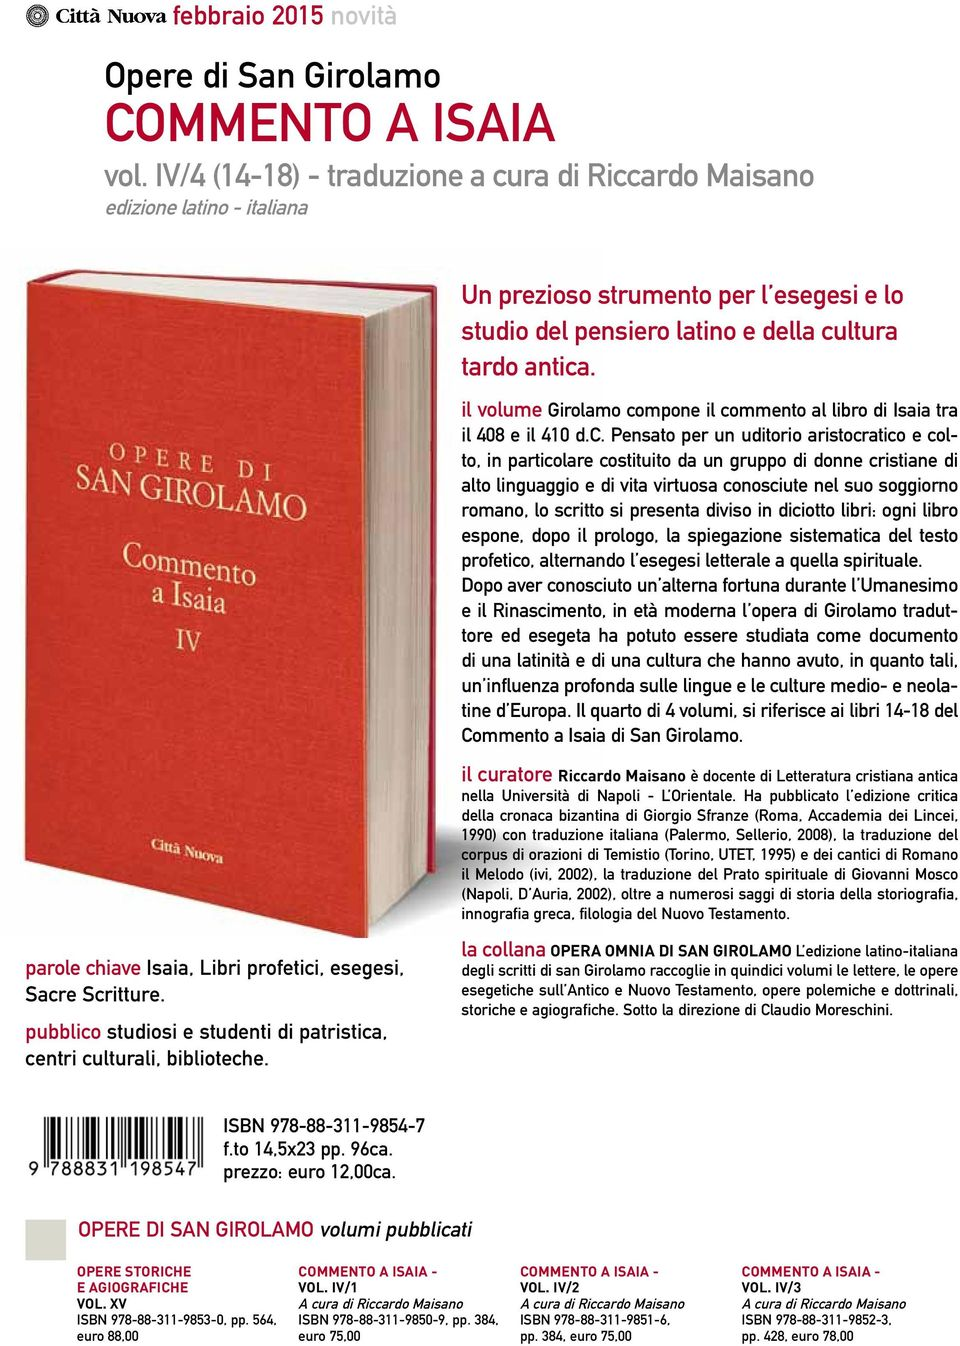 il volume Girolamo co